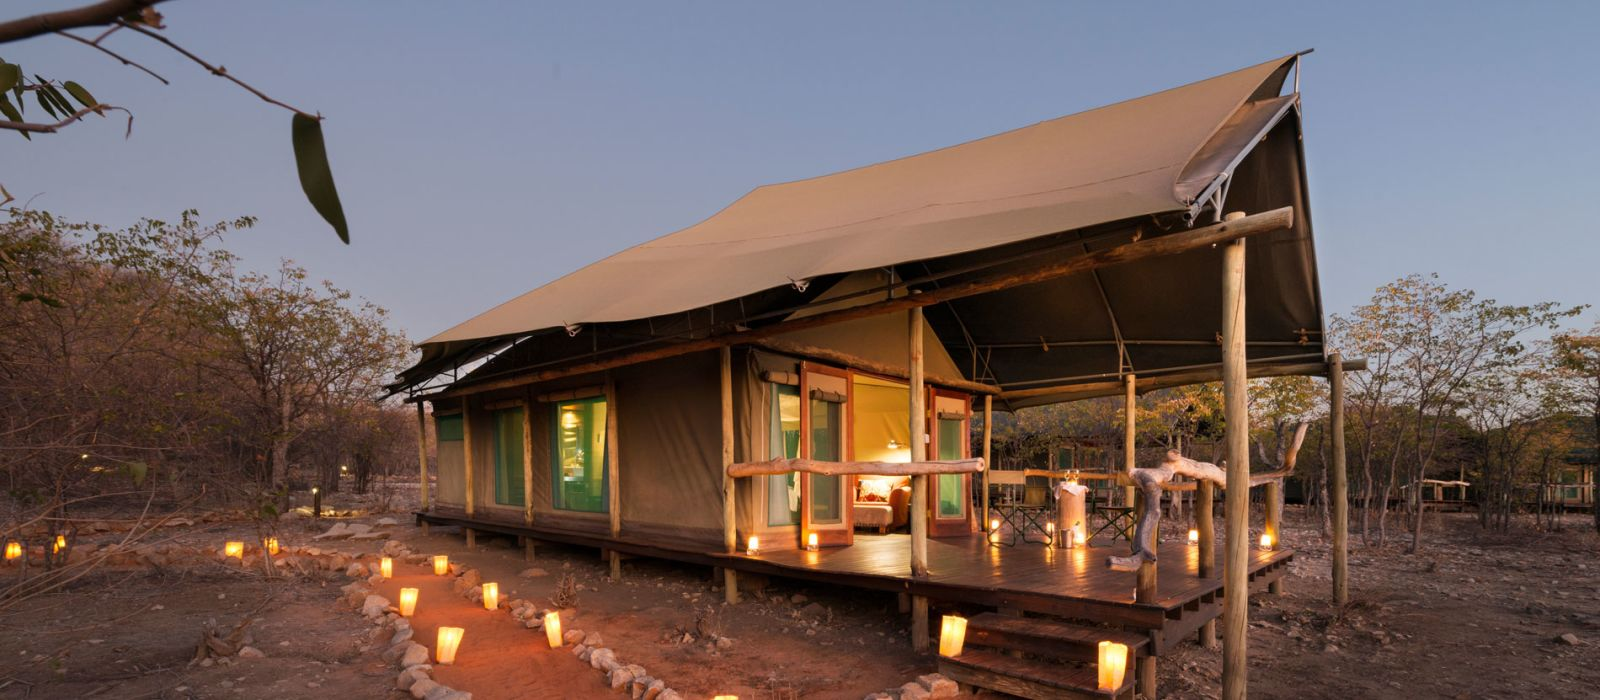 Hotel Ongava Tented Camp Namibia